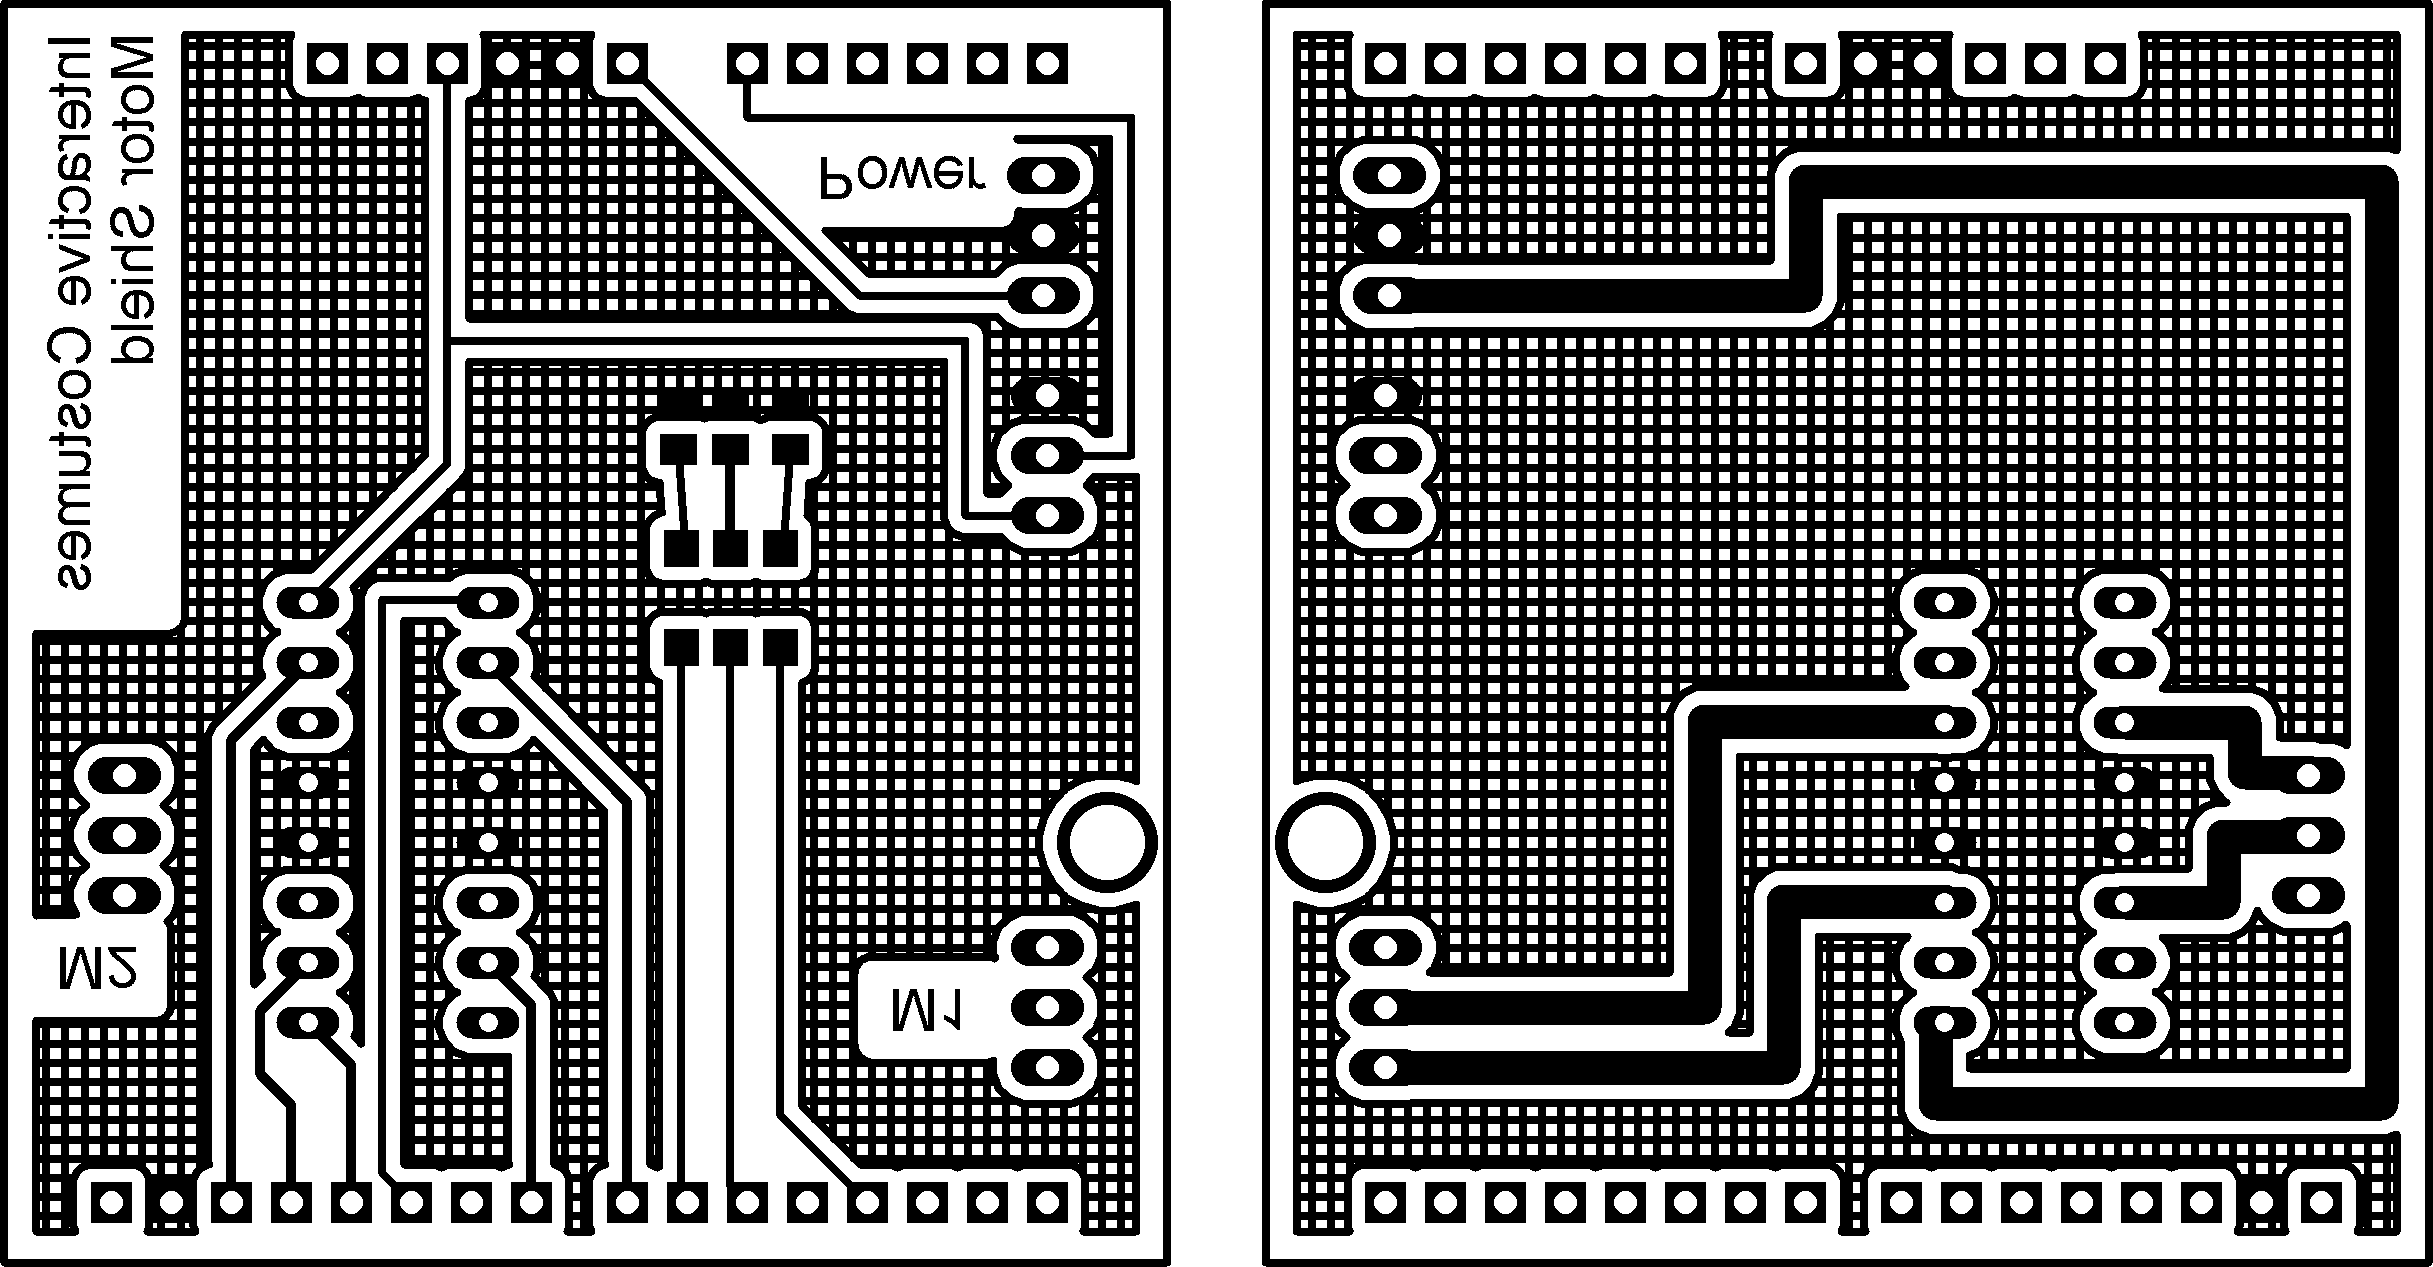 Homemade Pcb Interactive Costumes Printed Circuit Boards In Minutes Pc Etching Prototyping Board Layout Left Top Layer Mirrored Right Bottom